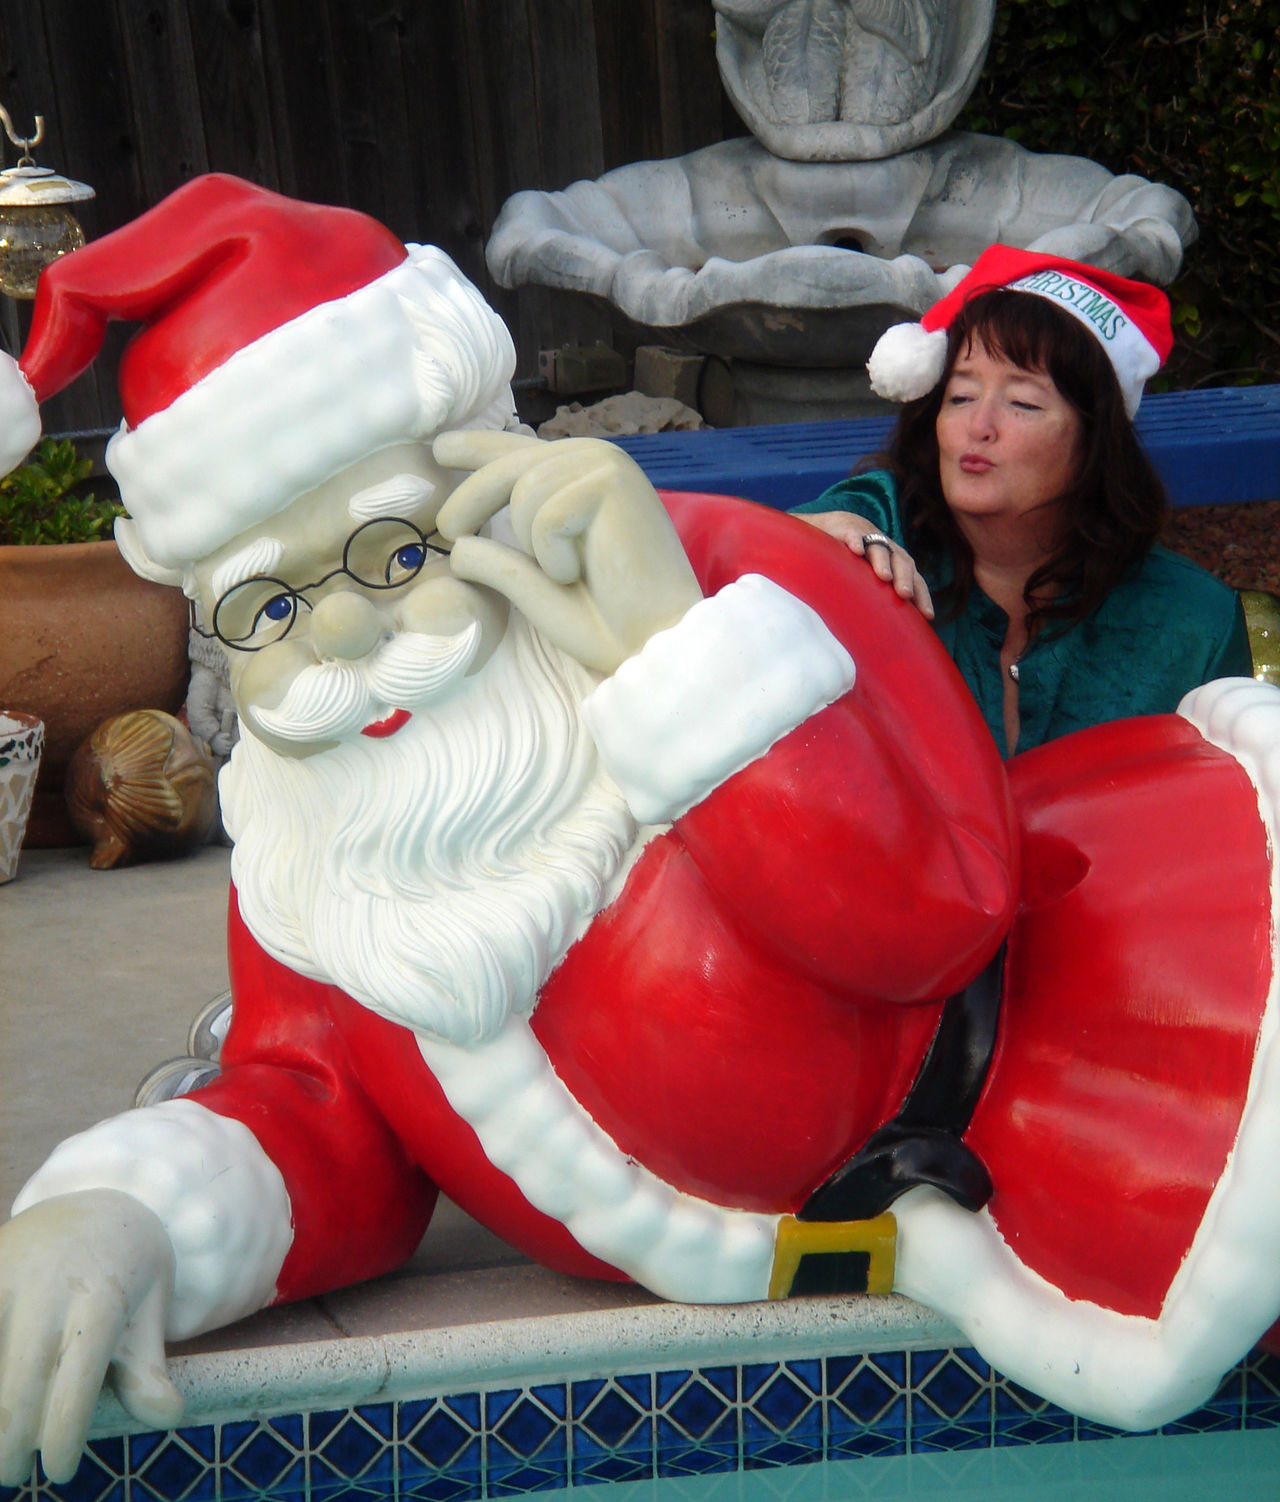 Me in a friend's backyard. Backyard Blowing A Kiss Casual Clothing Childhood Cute Day Fun Glasses Leisure Activity Pool-side Santa Lifestyles Outdoors Portrait Red Red Relaxation Santa By The Pool Santa Hat Sitting Smiling Warm Clothing White